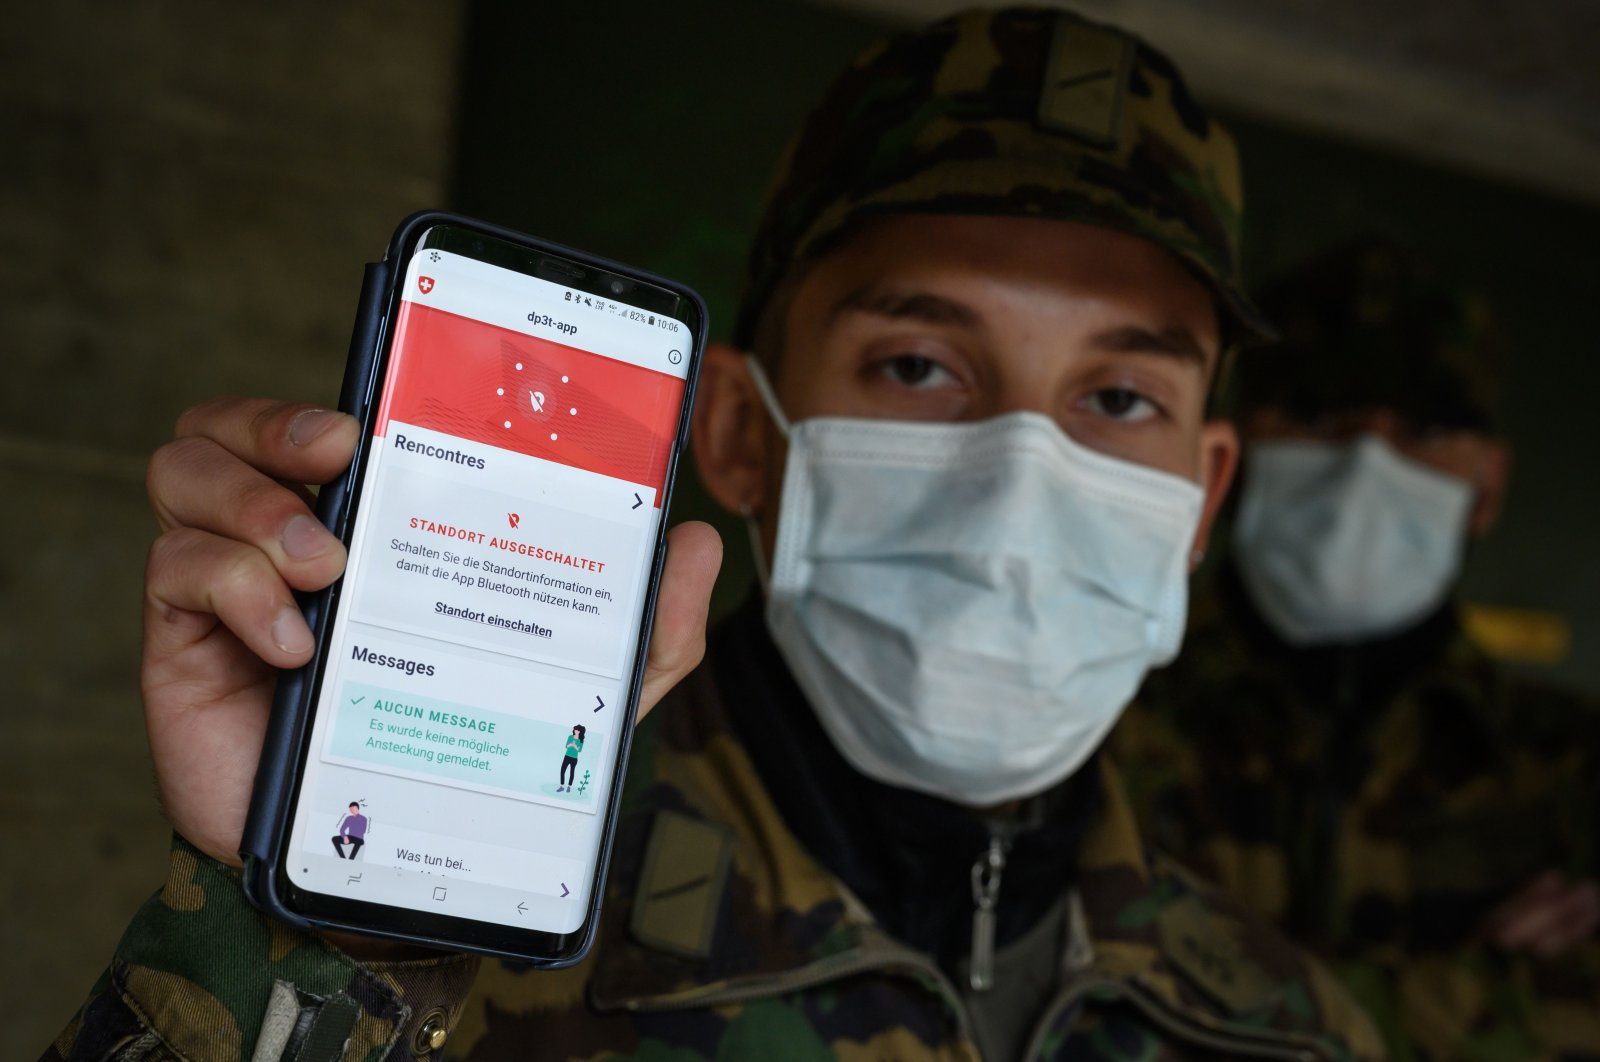 A Swiss soldier wearing a protective face mask poses with his smartphone at the Swiss army barracks of Chamblon on April 30, 2020.